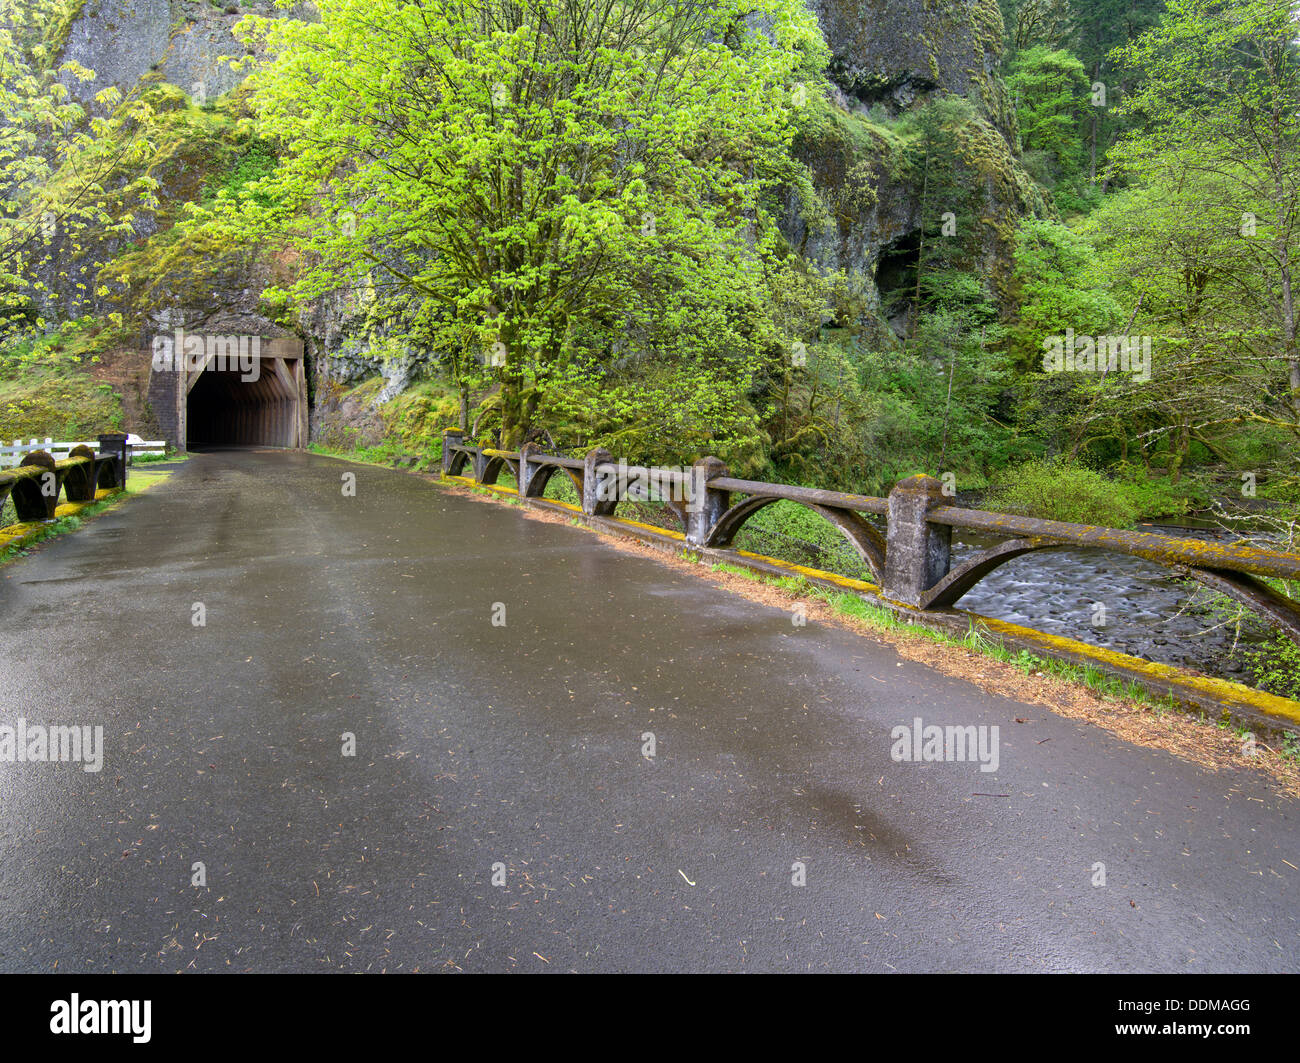 Old Columbia River Highway and tunnel. Columbia River Gorge National Scenic Area. Oregon - Stock Image